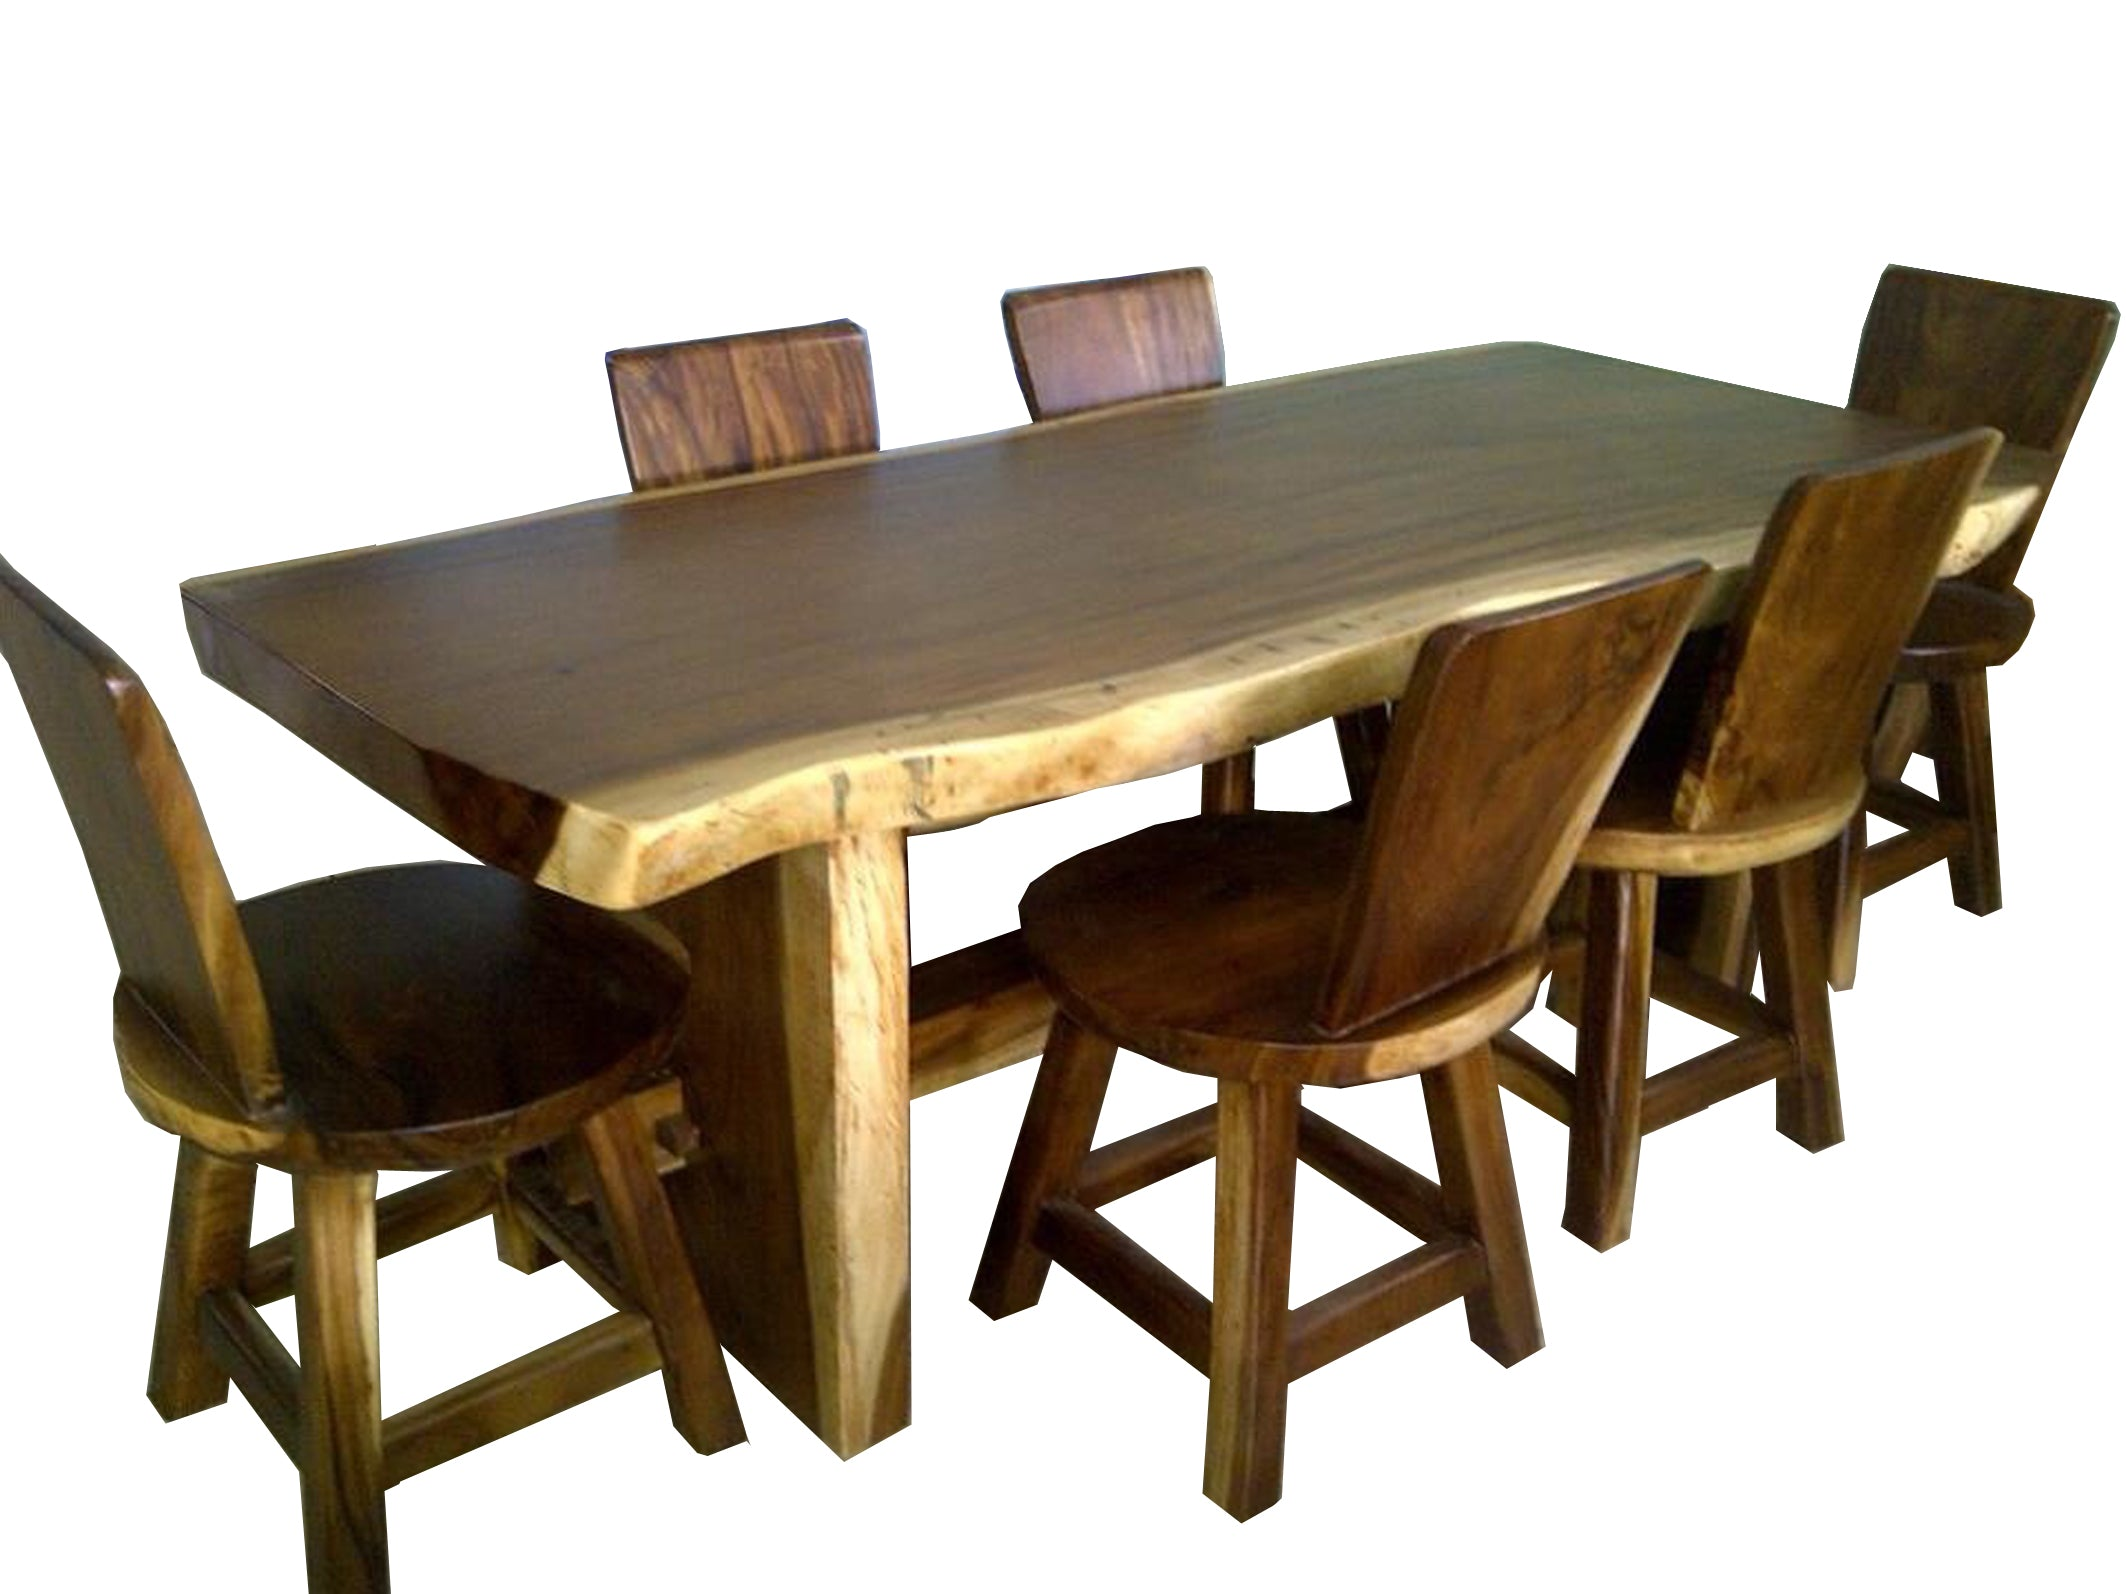 Dining Room Furniture London Ontario Amish Handcrafted Furniture Mennonite Furniture U0026 More